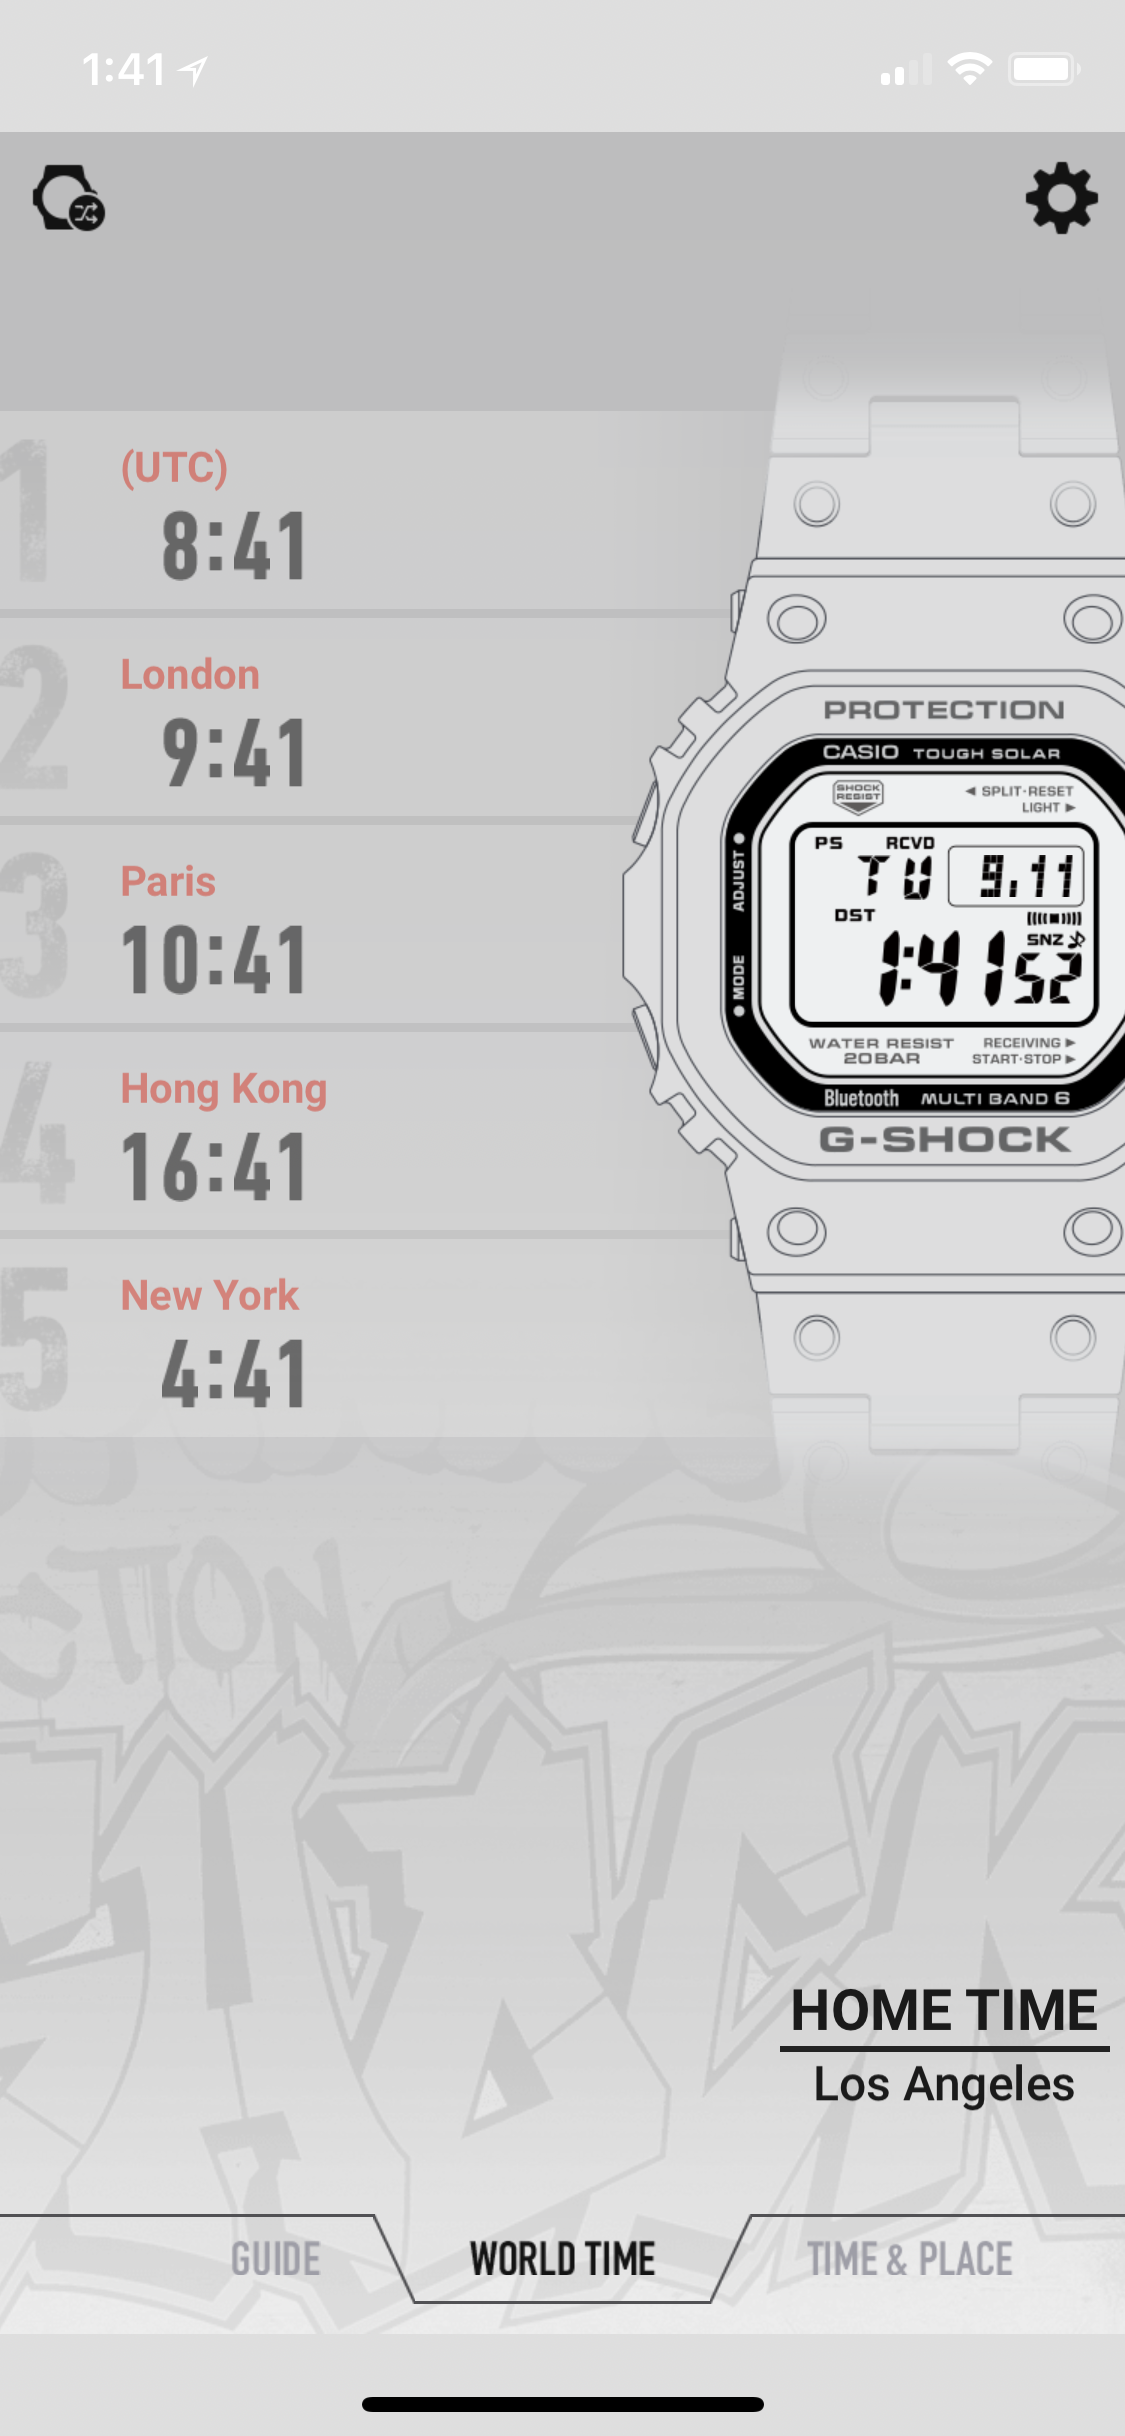 casio g-shock 35th anniversary models - 74.PNG